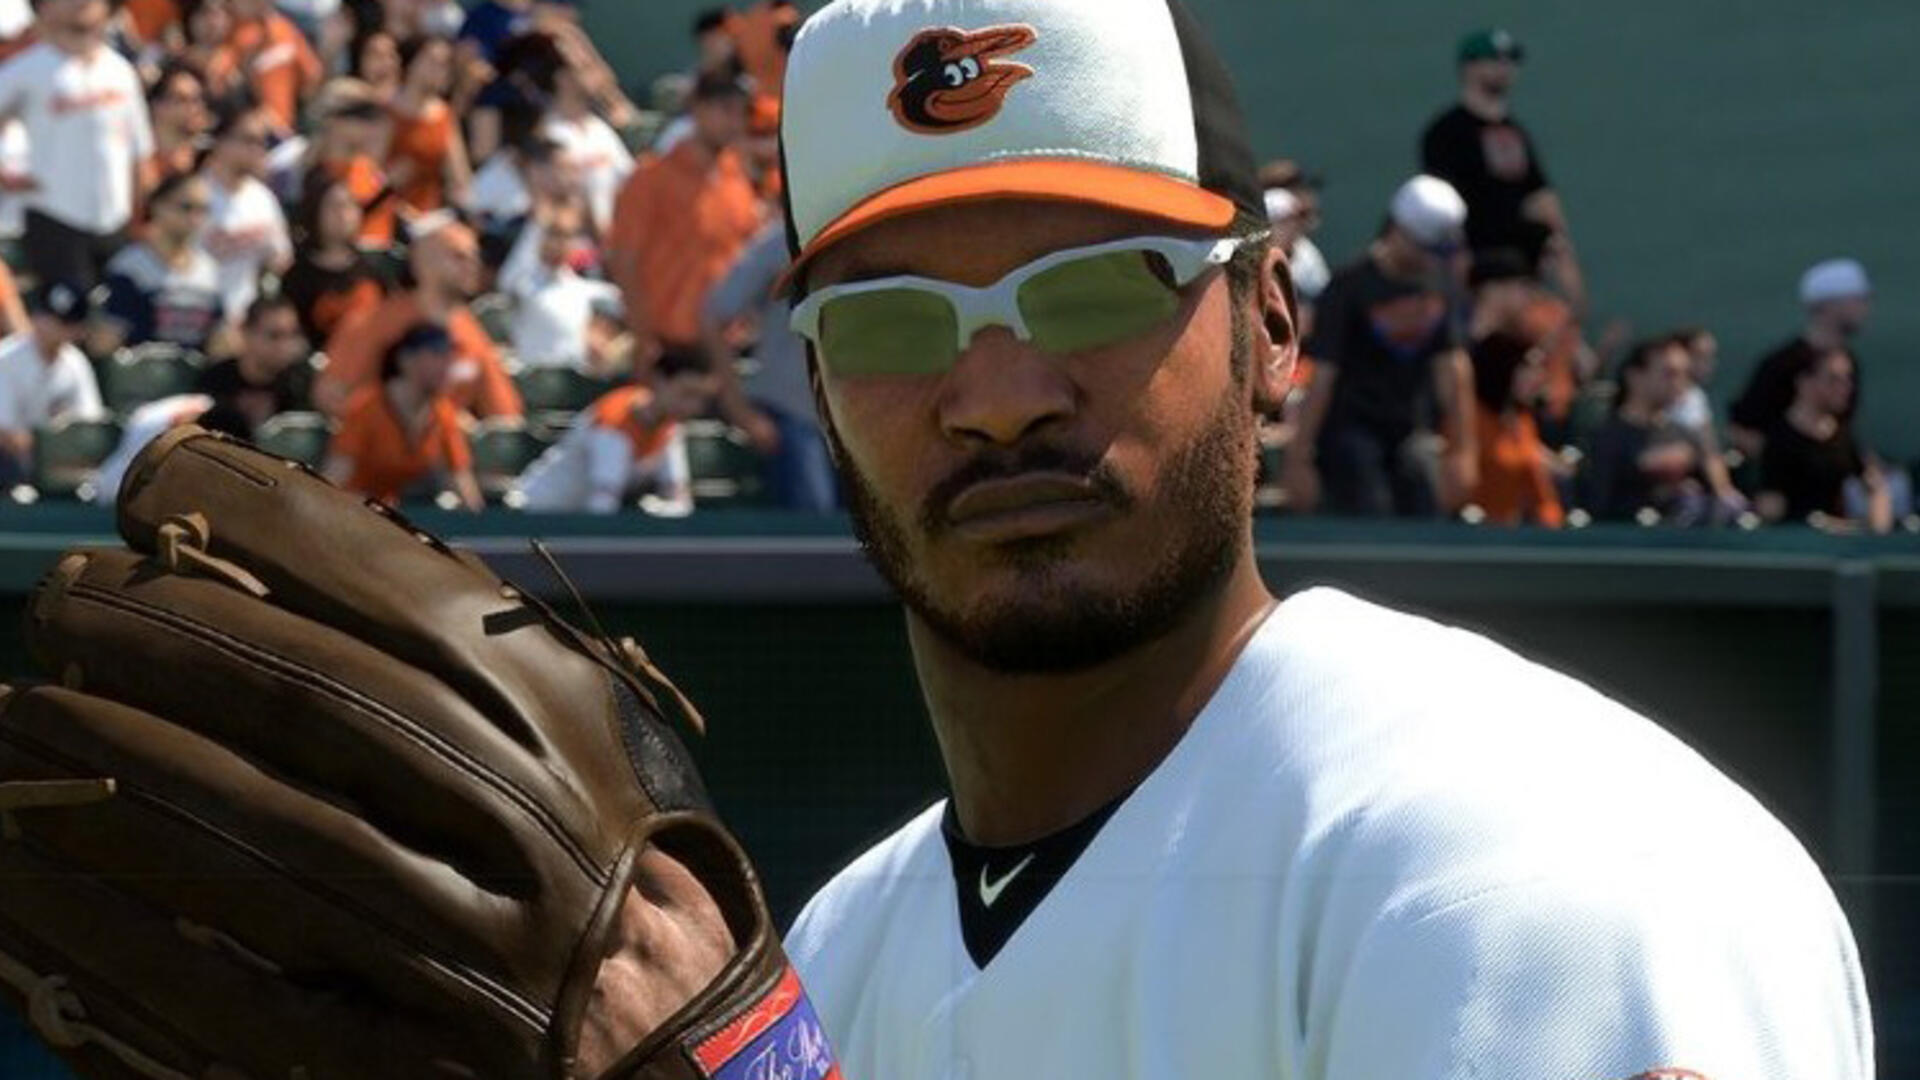 MLB 15: The Show PlayStation 4 Review: On the Road Again